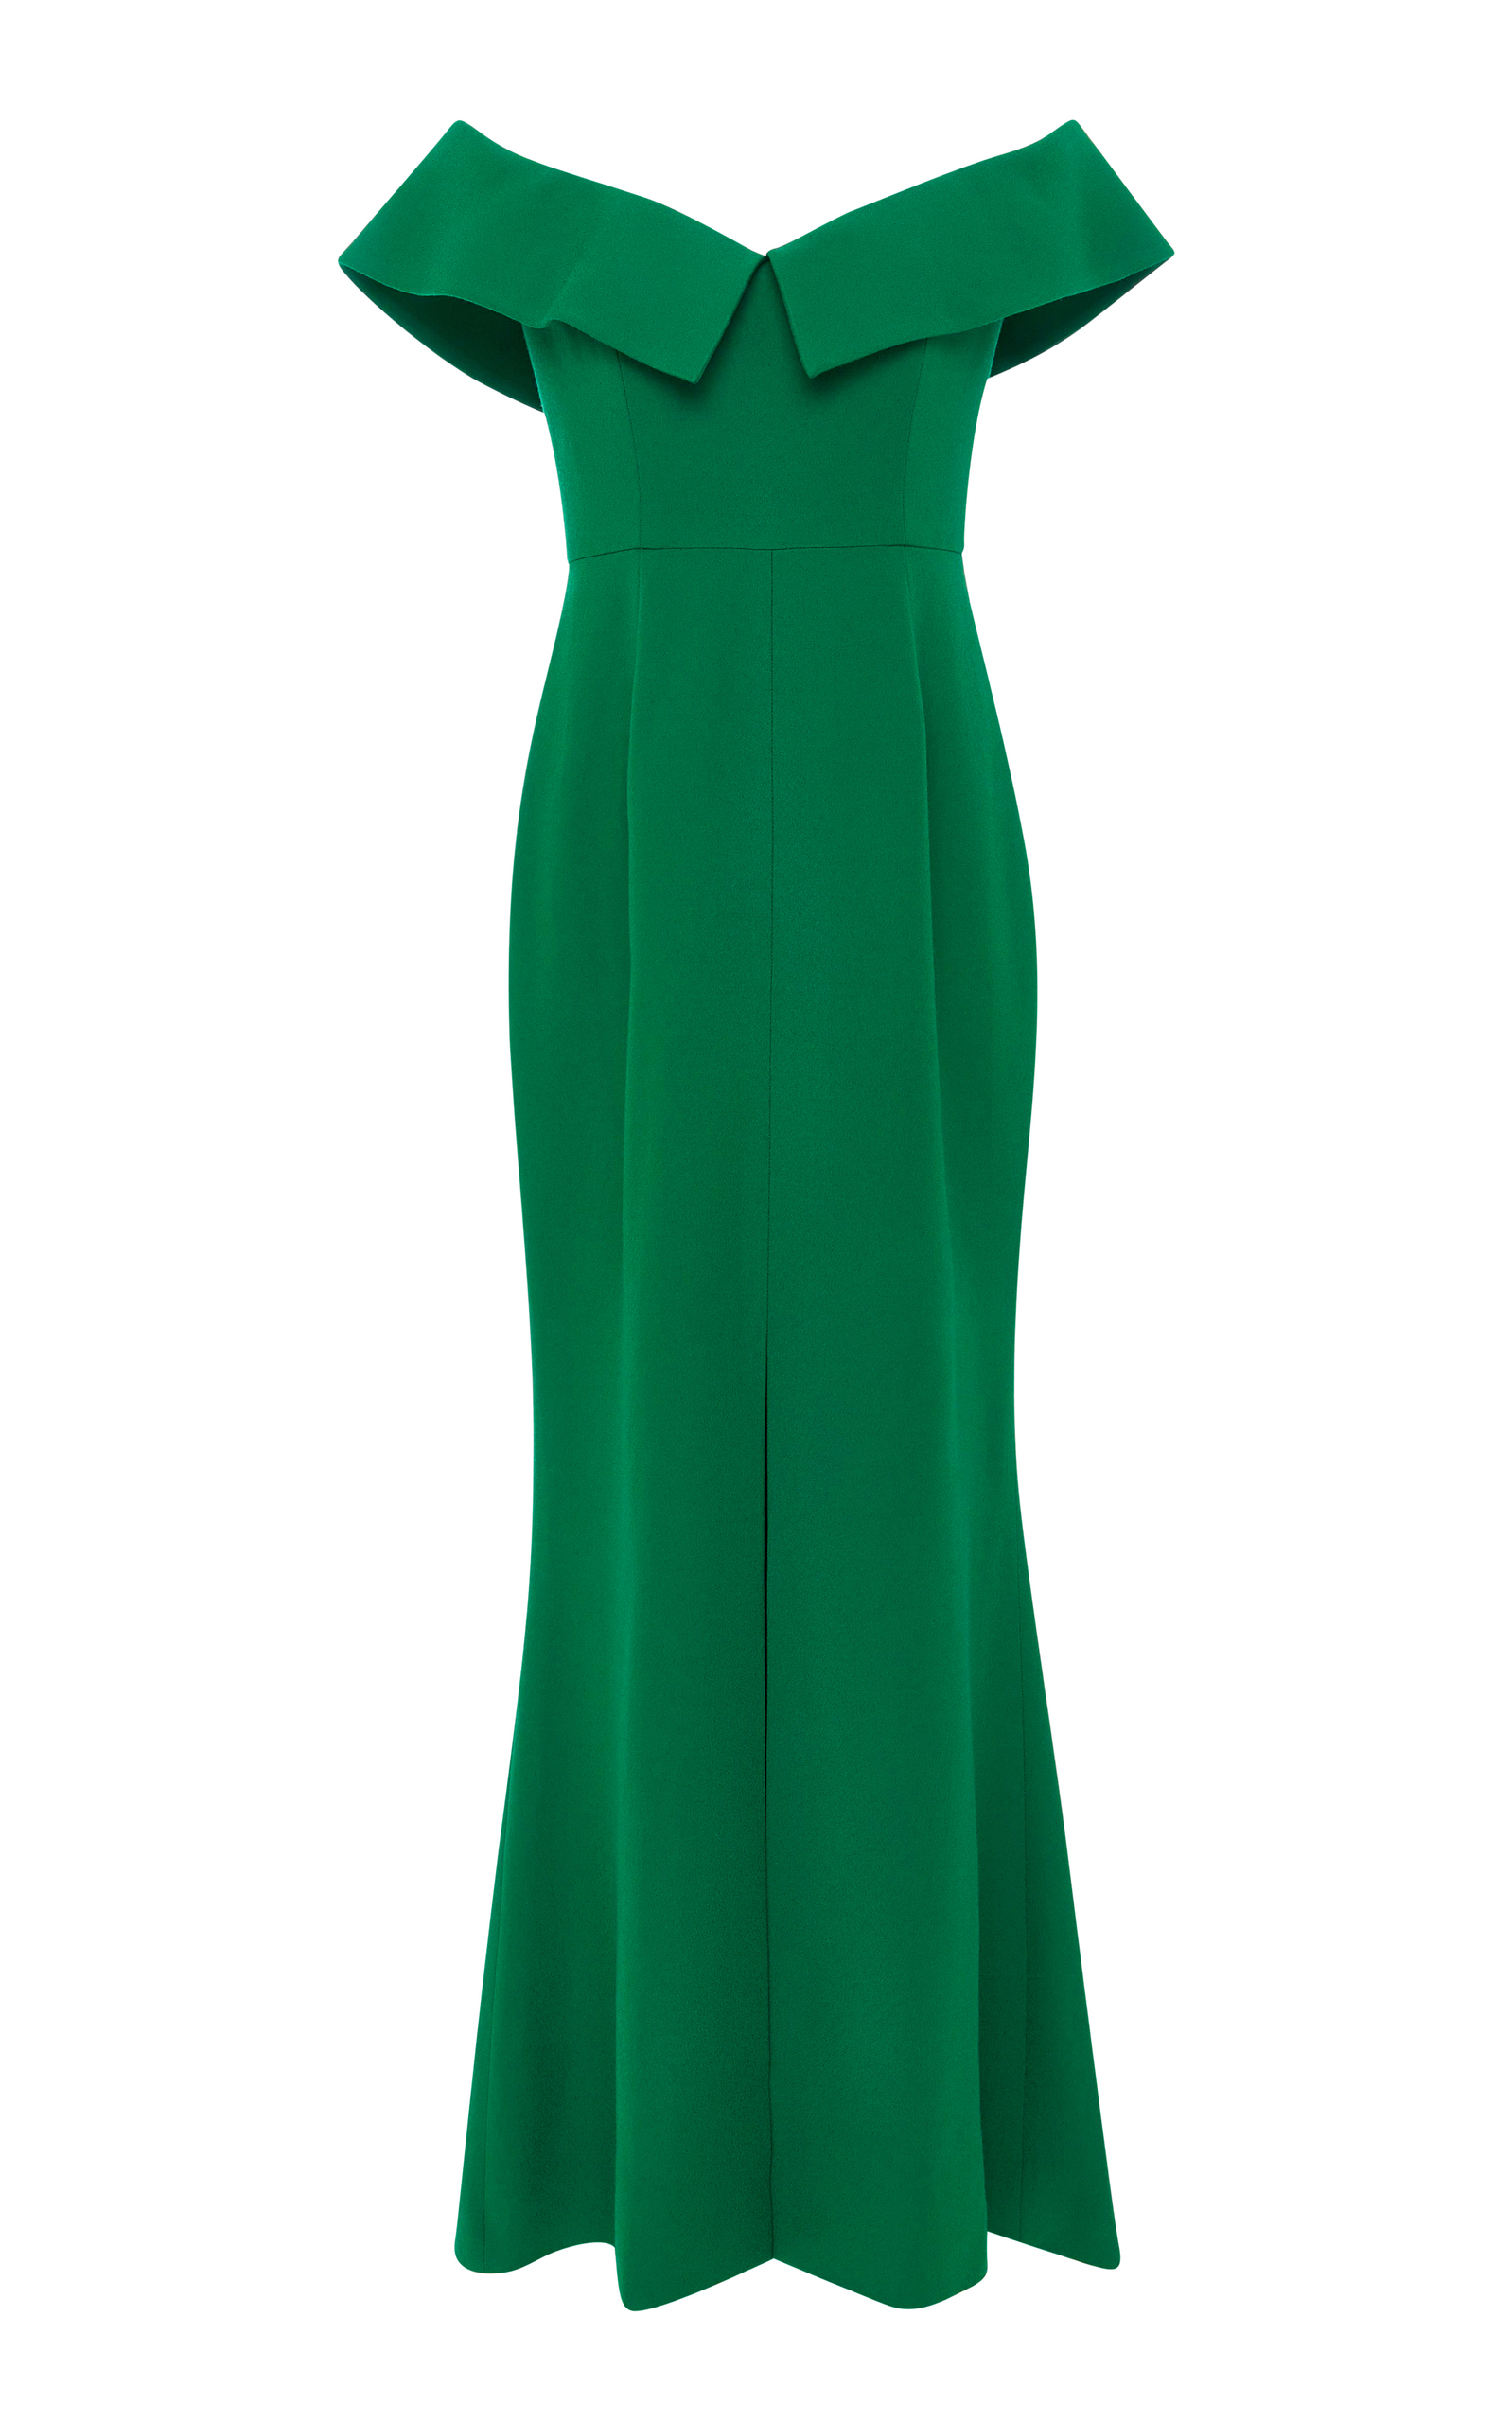 ELIZABETH KENNEDY OFF-THE-SHOULDER EMERALD CREPE DE CHINE COLUMN DRESS